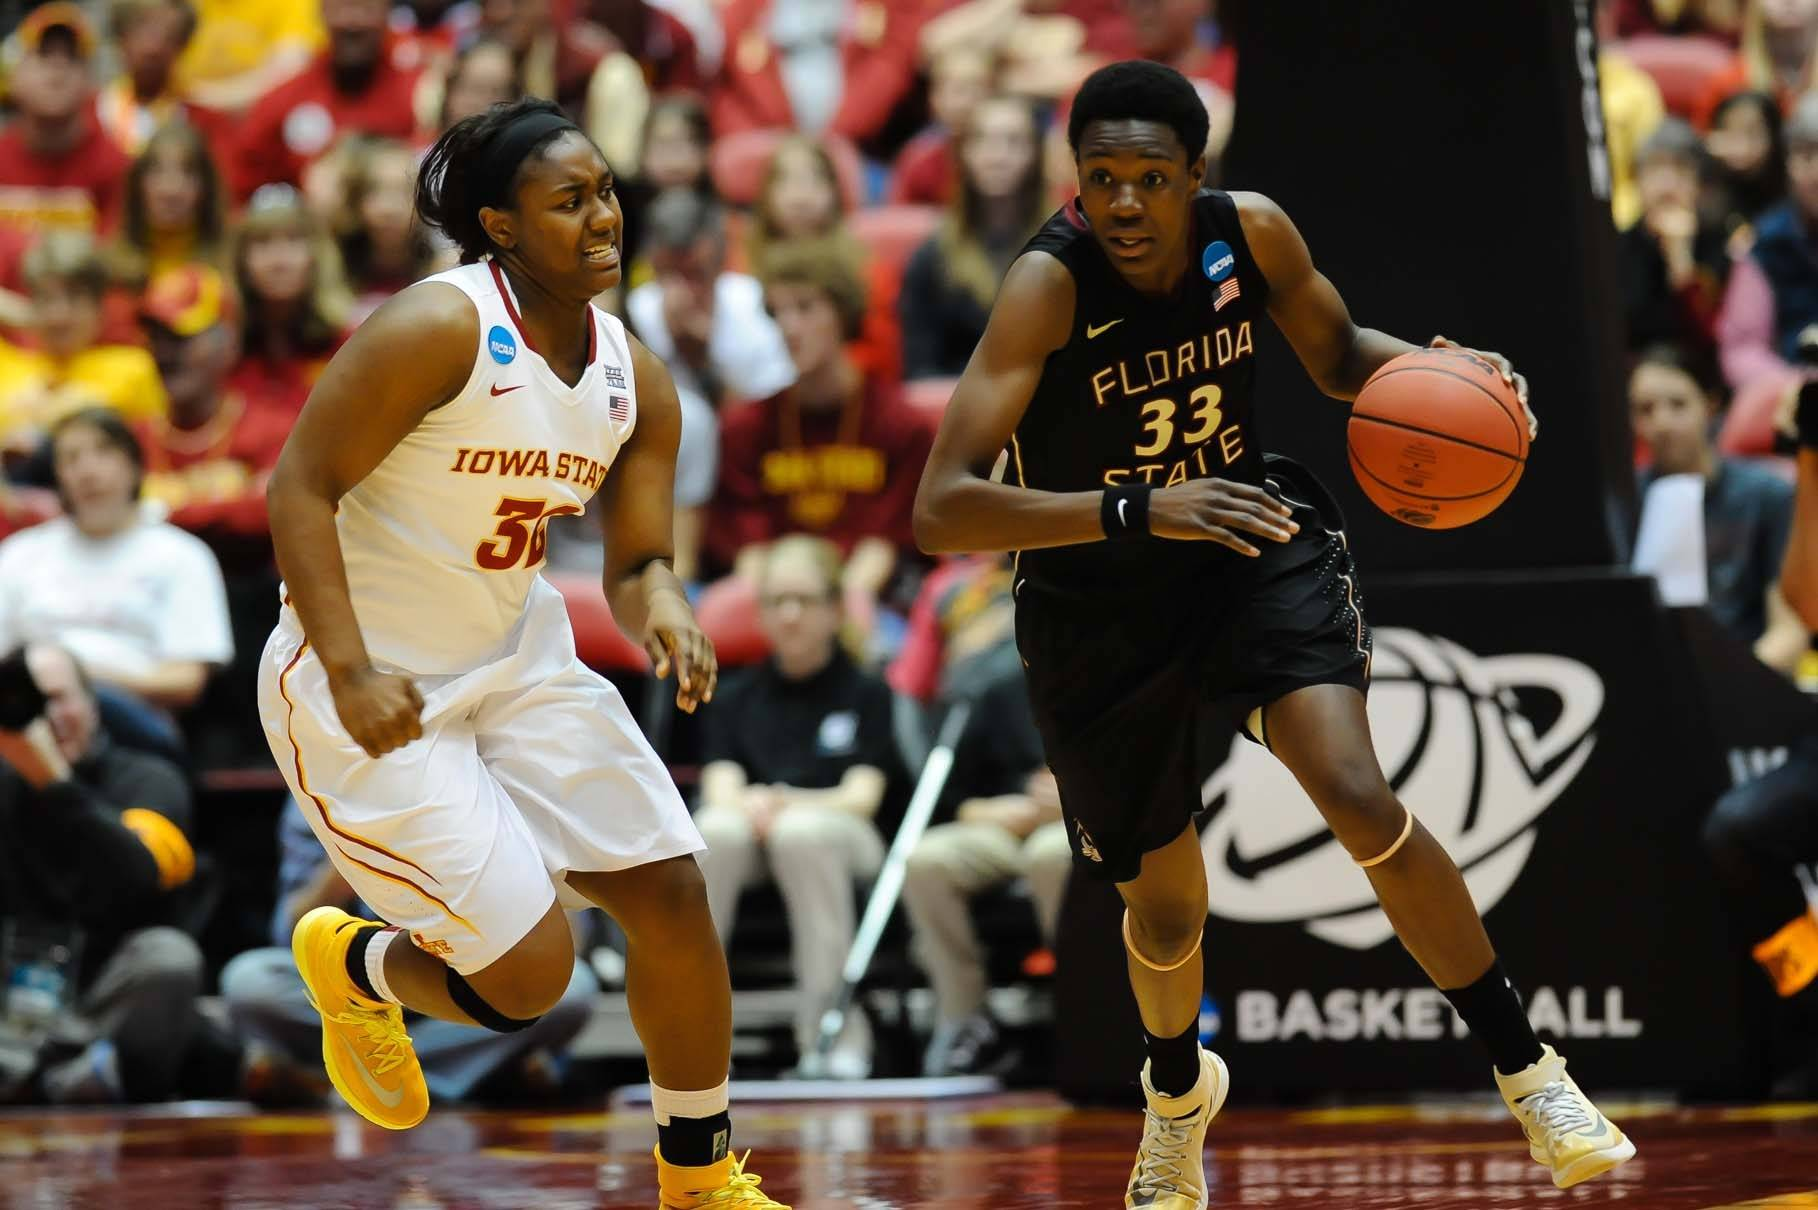 Mar 22, 2014; Ames, IA, USA; Florida State Seminoles forward Natasha Howard (33) drives up the court against the Iowa State Cyclones in the second half of a women's college basketball game. Mandatory Credit: Steven Branscombe-USA TODAY Sports